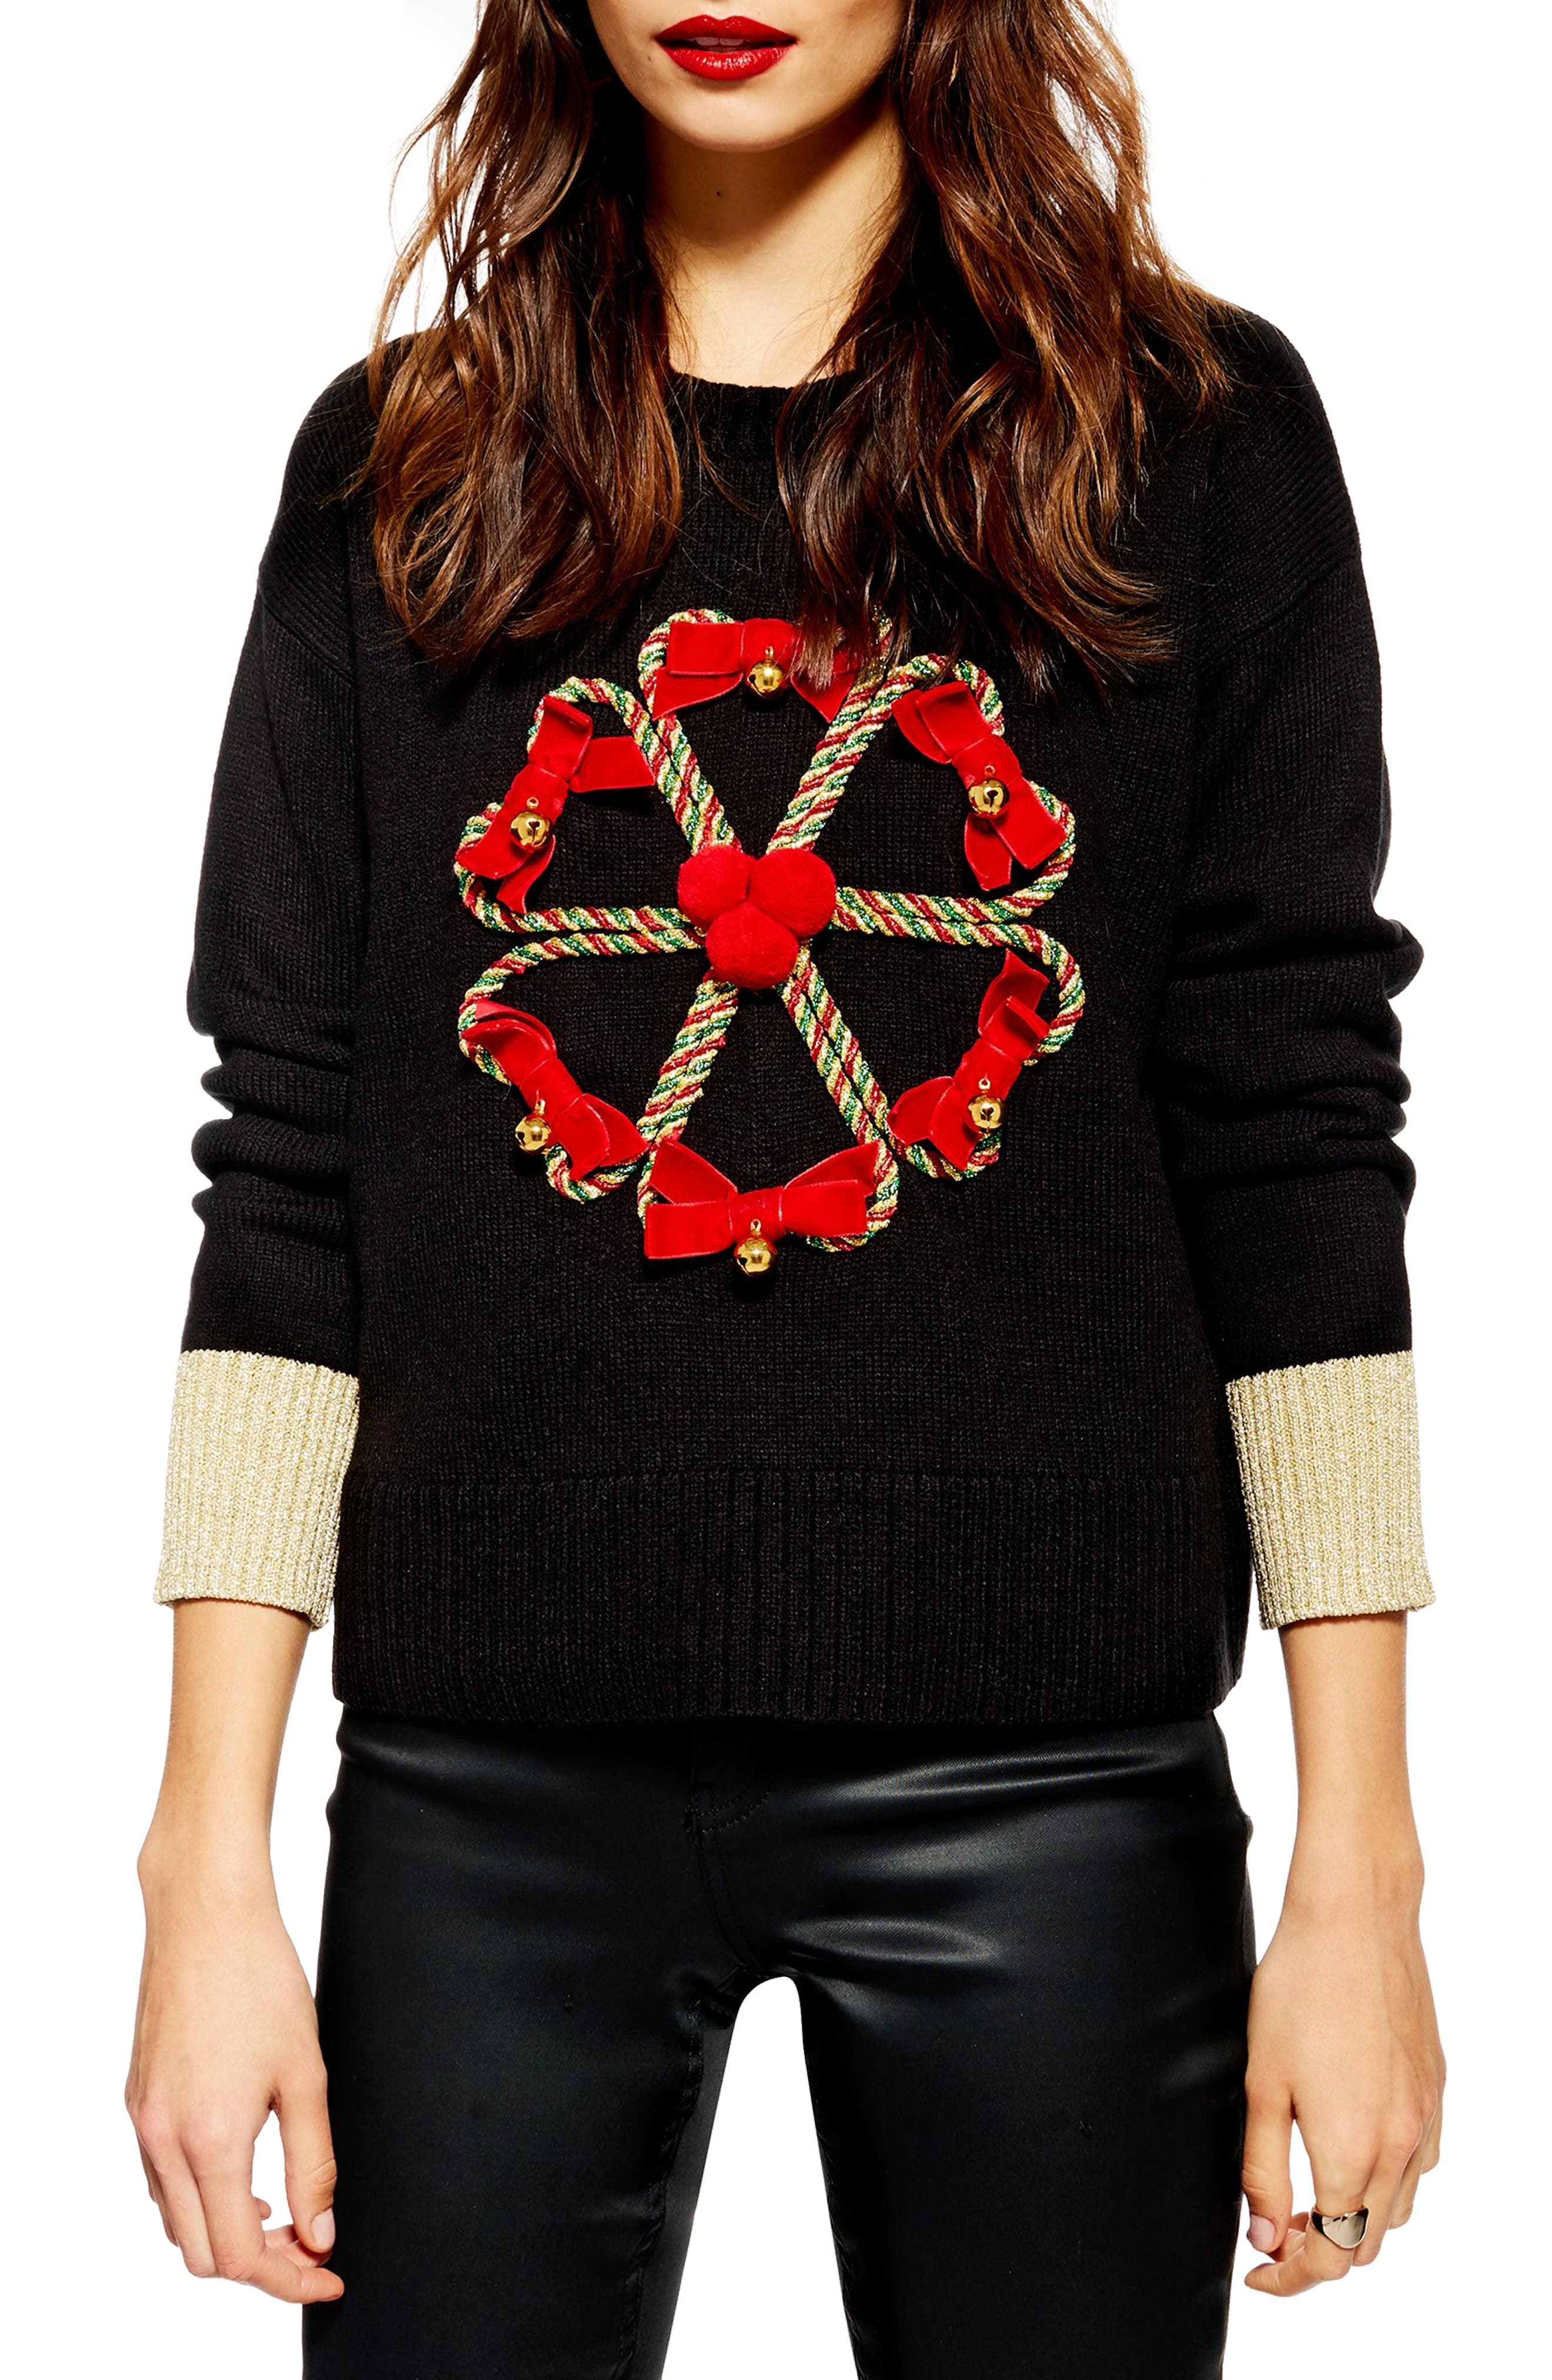 TOPSHOP,                             Christmas Candy Cane Wreath Sweater,                             Main thumbnail 1, color,                             001